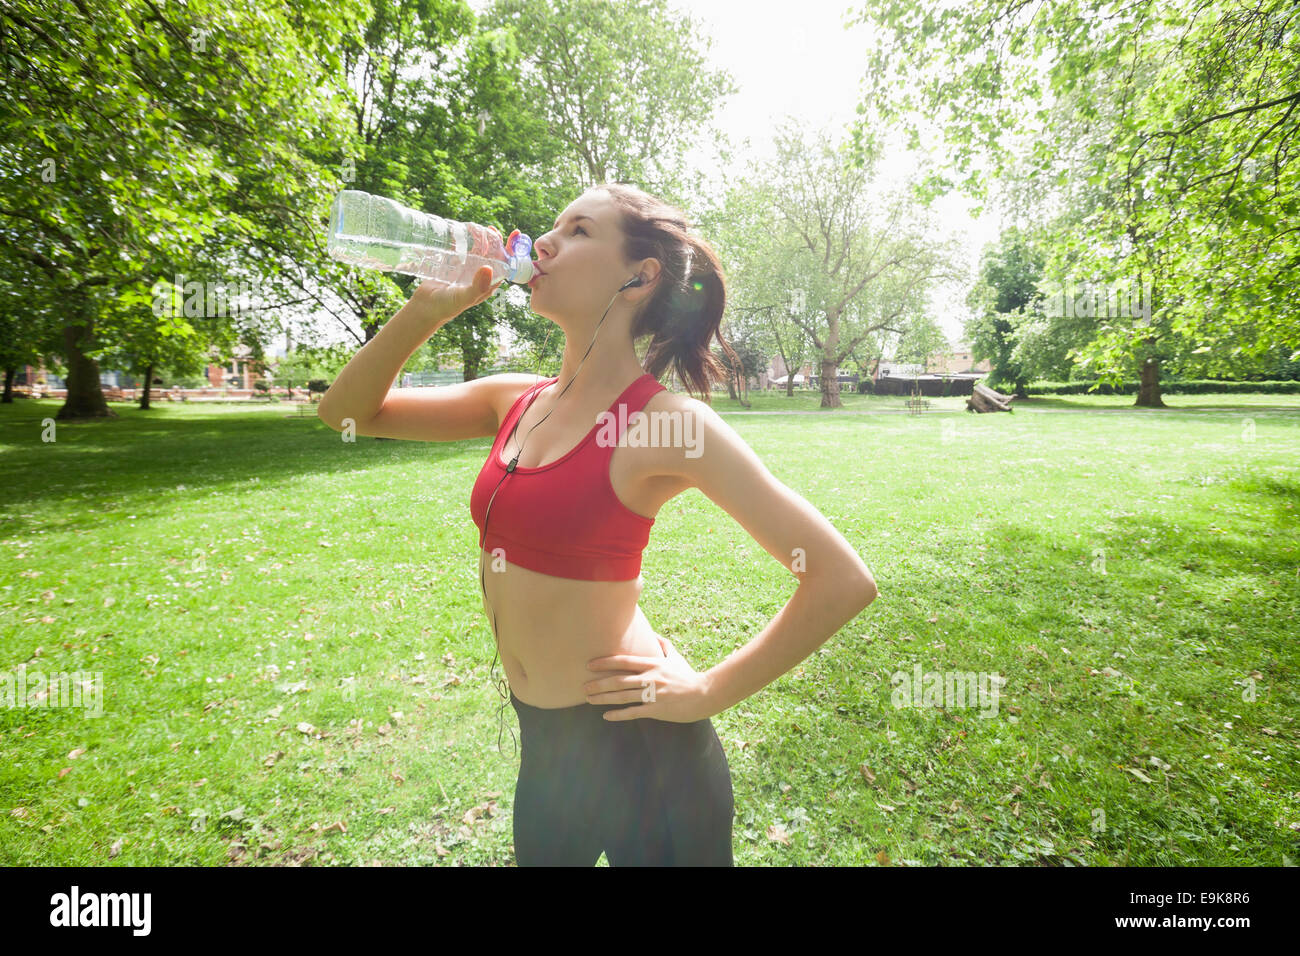 Fit woman drinking water while listening to music in park - Stock Image